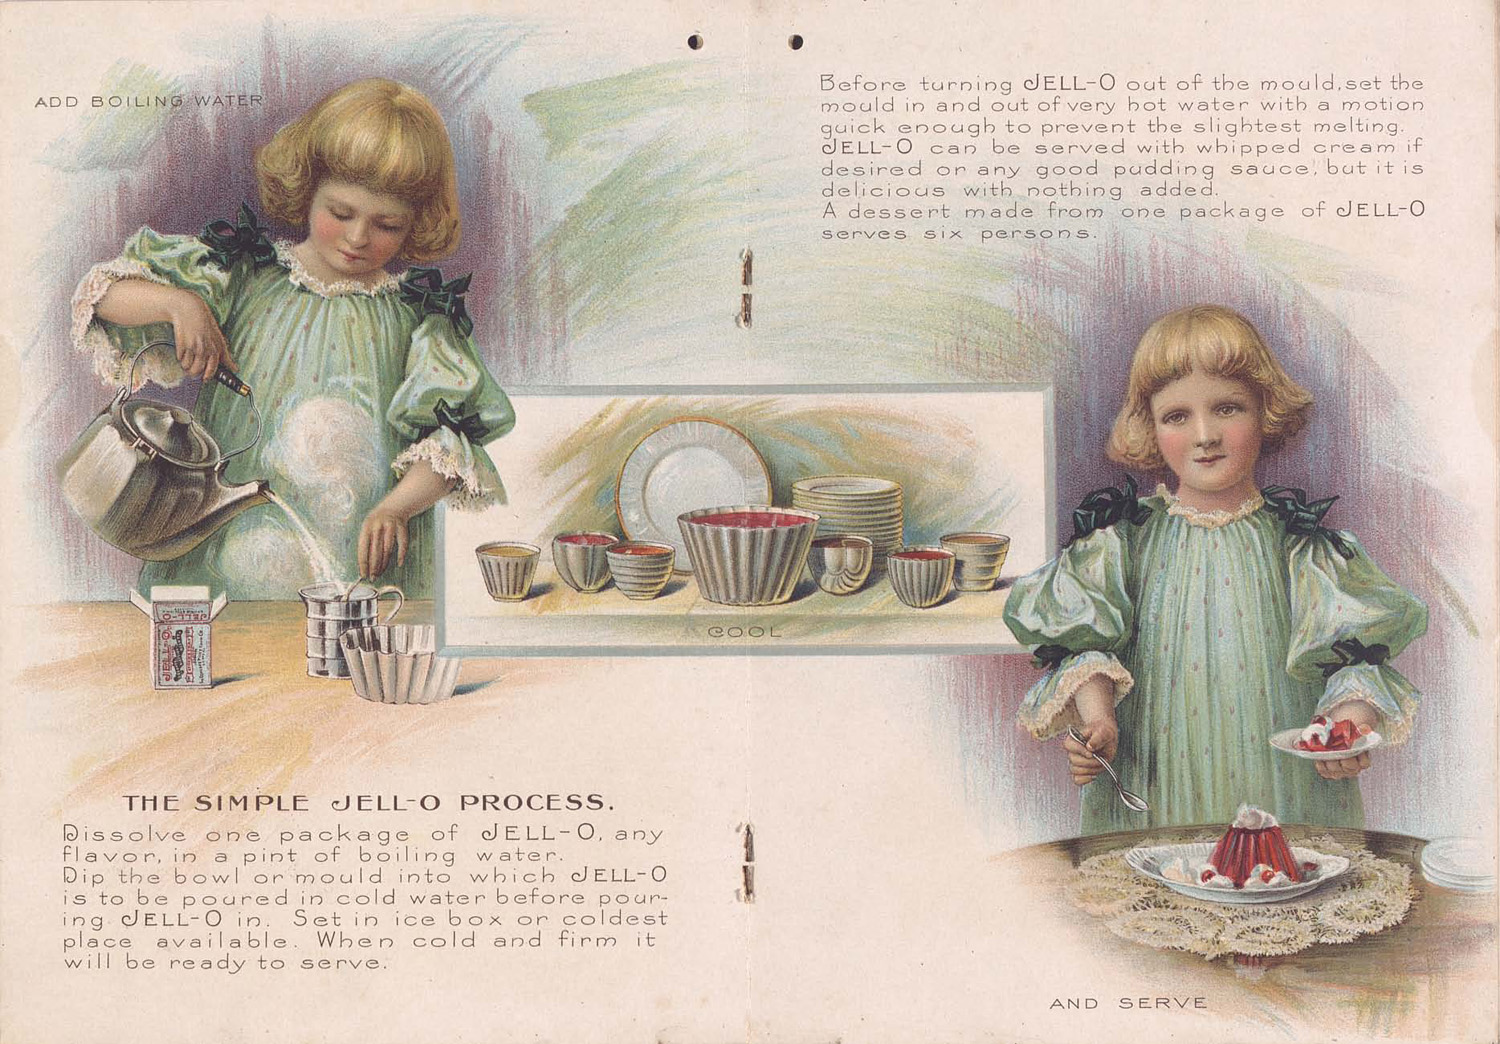 Miss Jell-O, a girl in a puffy dress, making a red jell-o mold